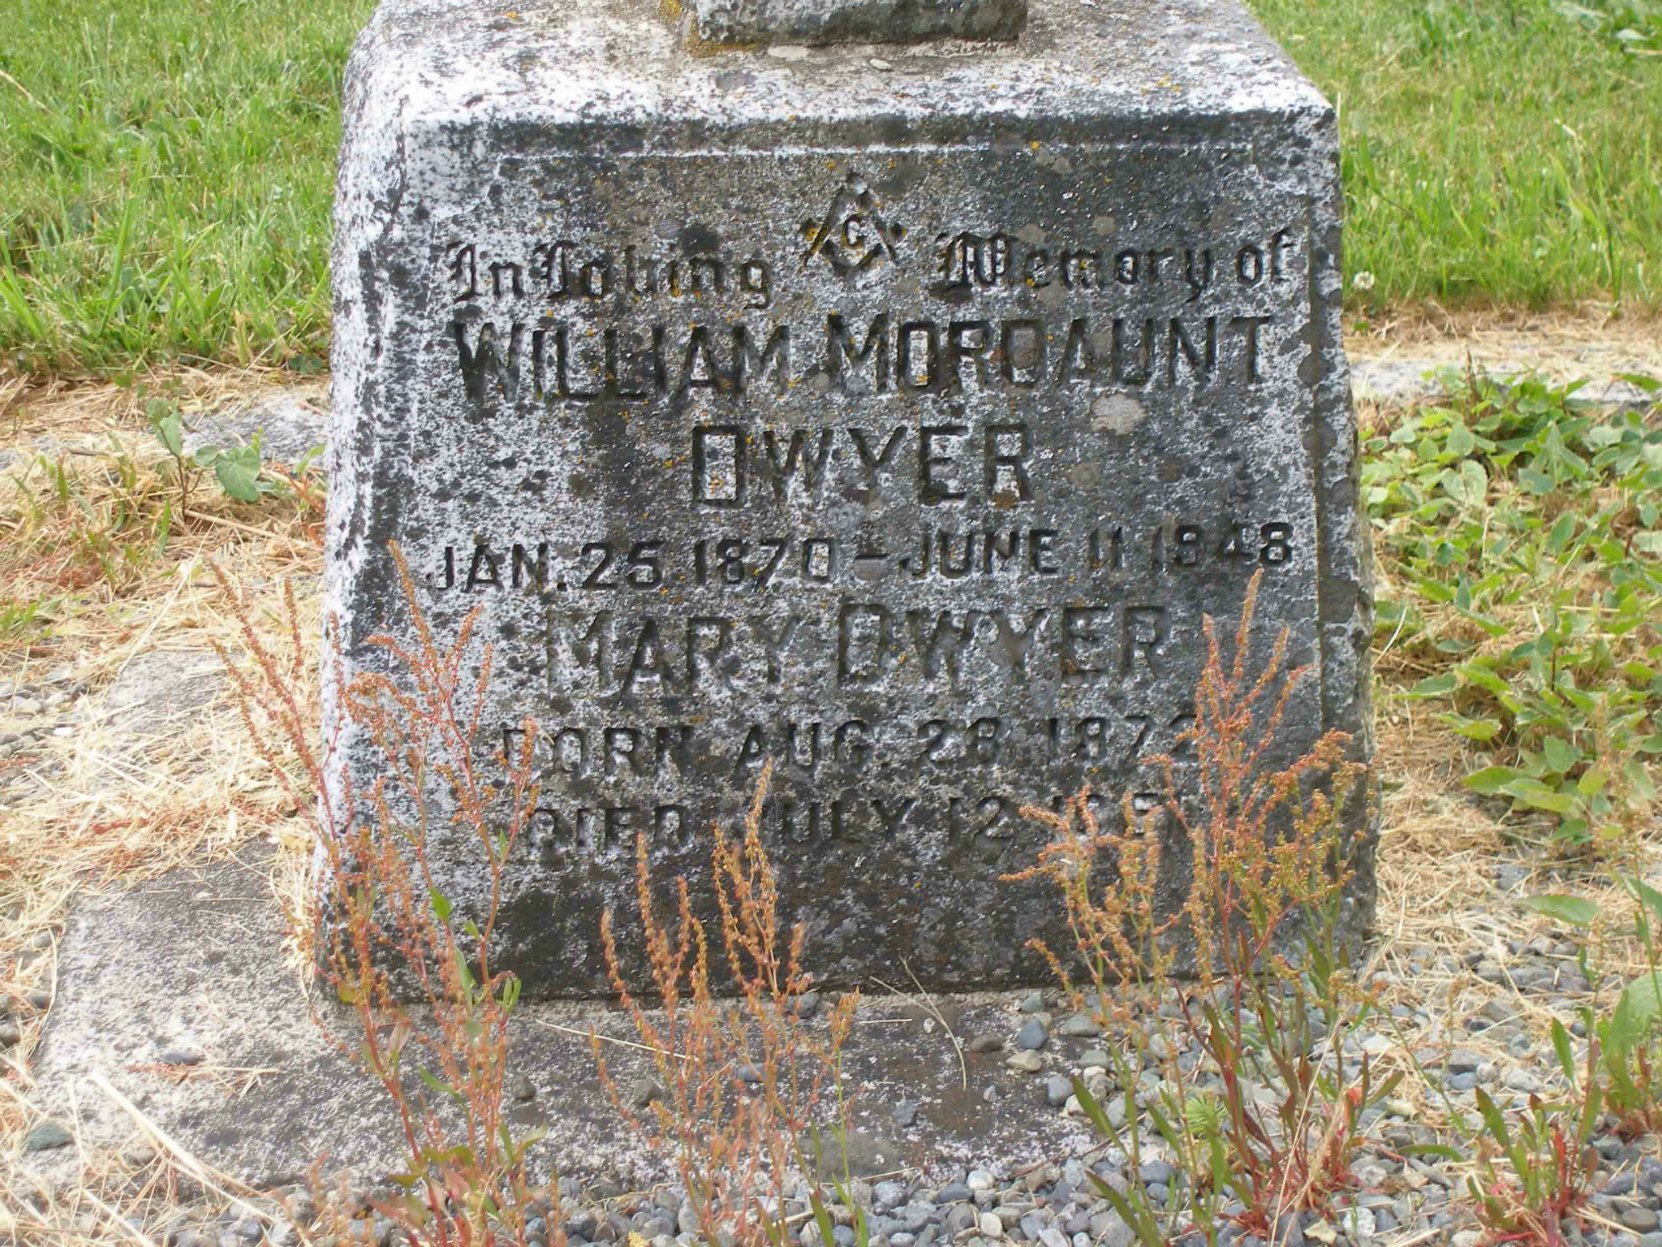 William Mordaunt Dwyer grave stone inscription, St. Peter's Quamichan Anglican cemetery, North Cowichan